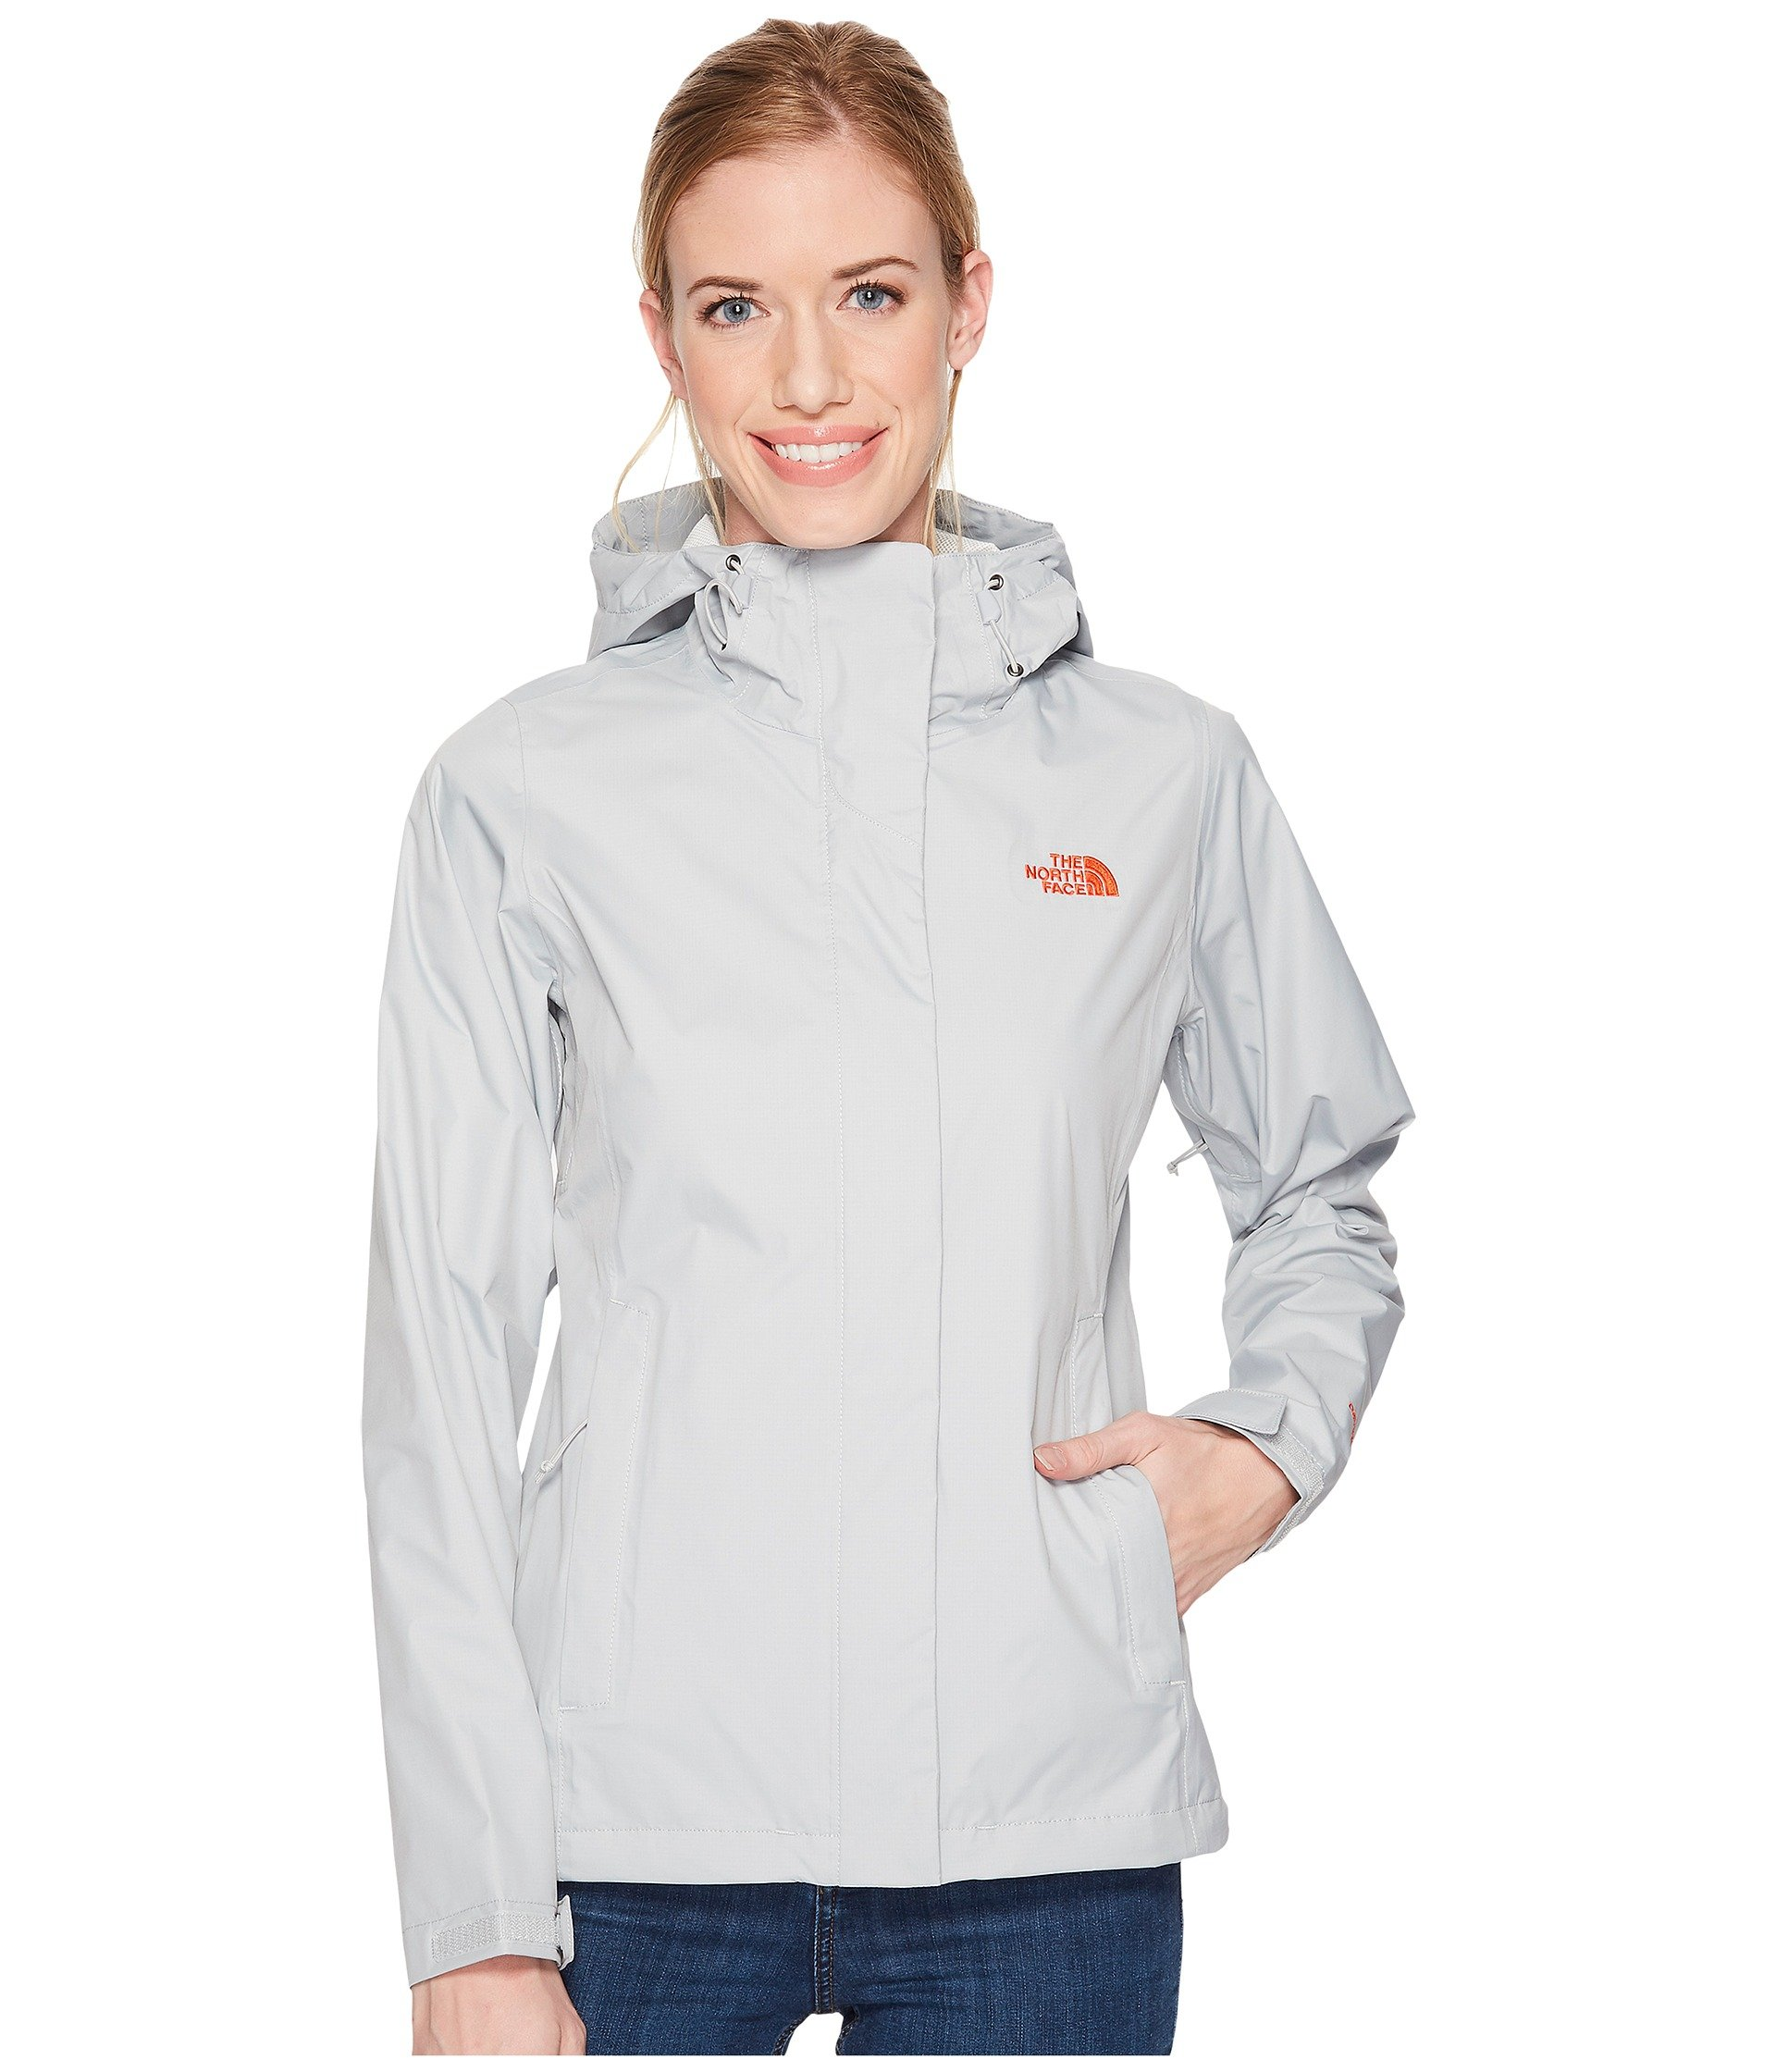 The North Face Venture 2 Jacket - Women's High Rise Grey/Fire Brick Red 3X-Large